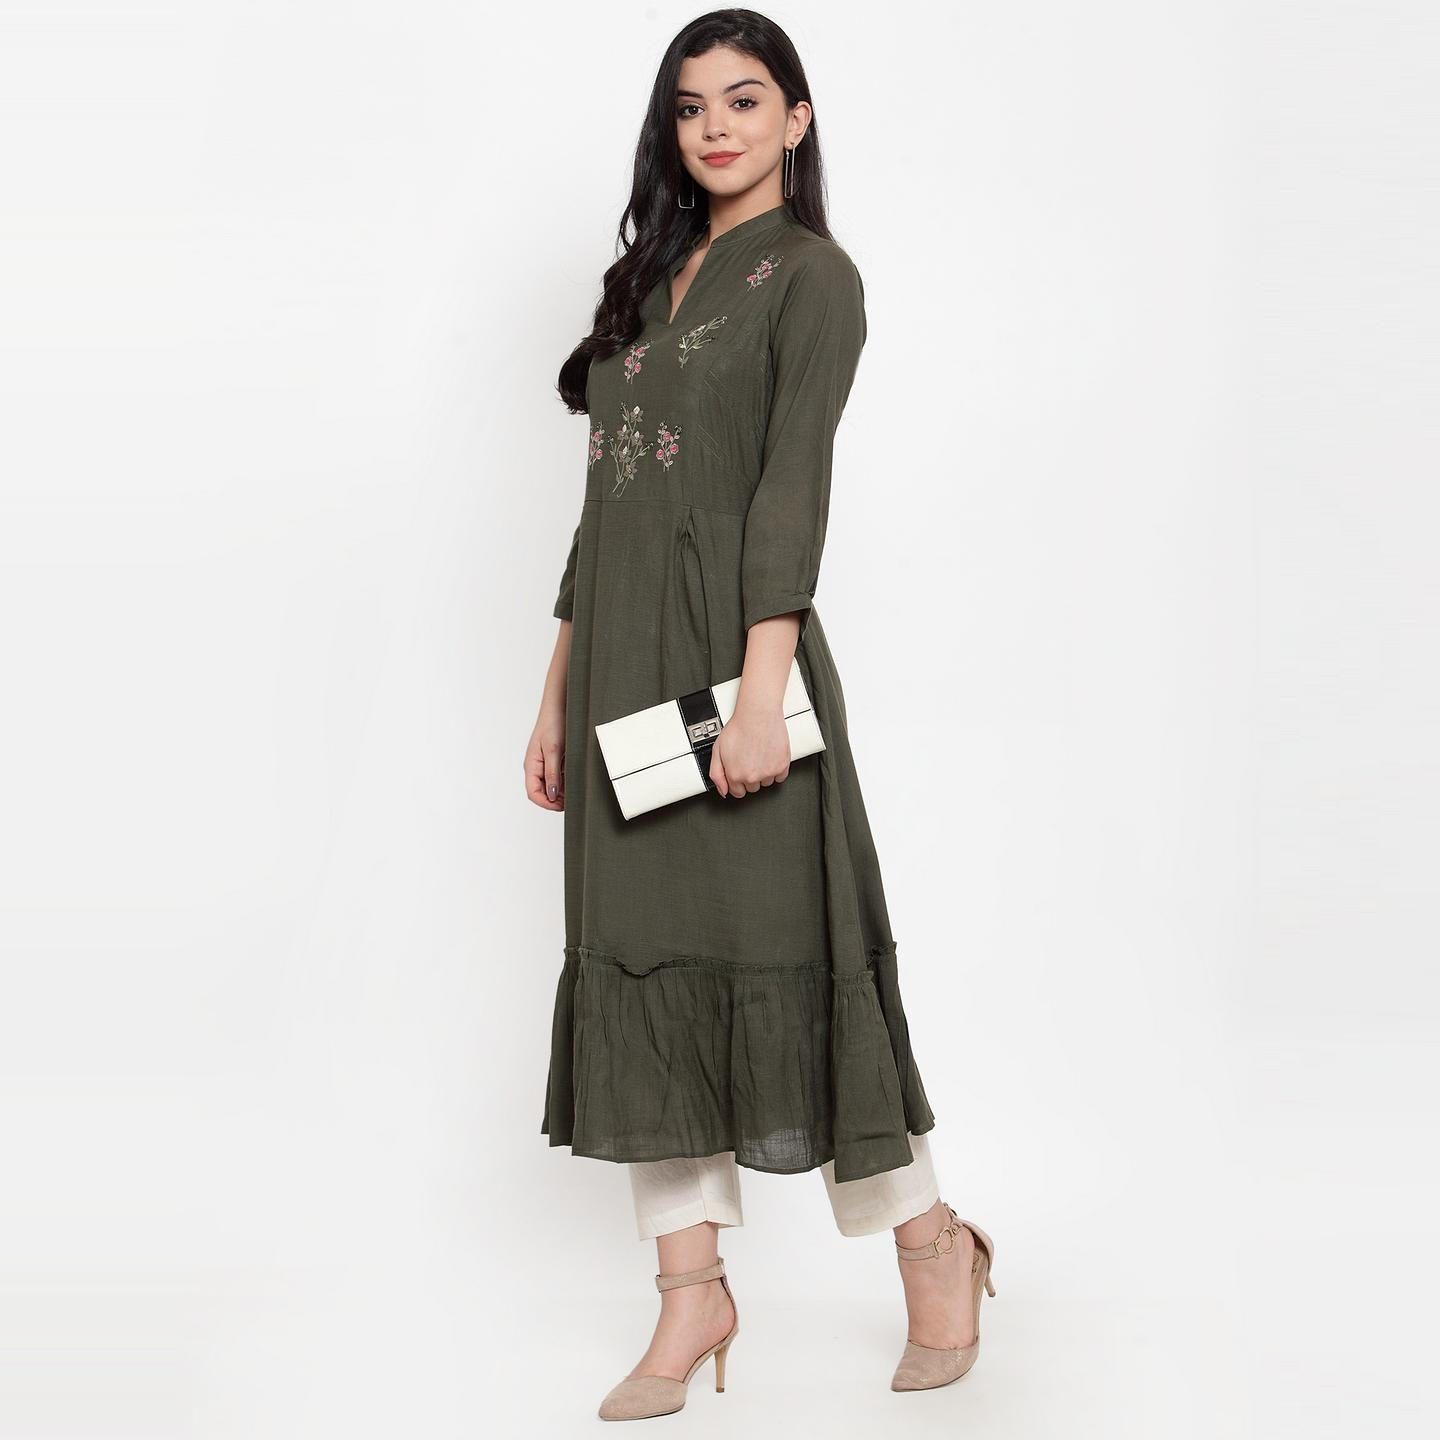 Fantastic Dark Olive Green Colored Party Wear Embroidered Calf Length A-Line Viscose-Rayon Kurti